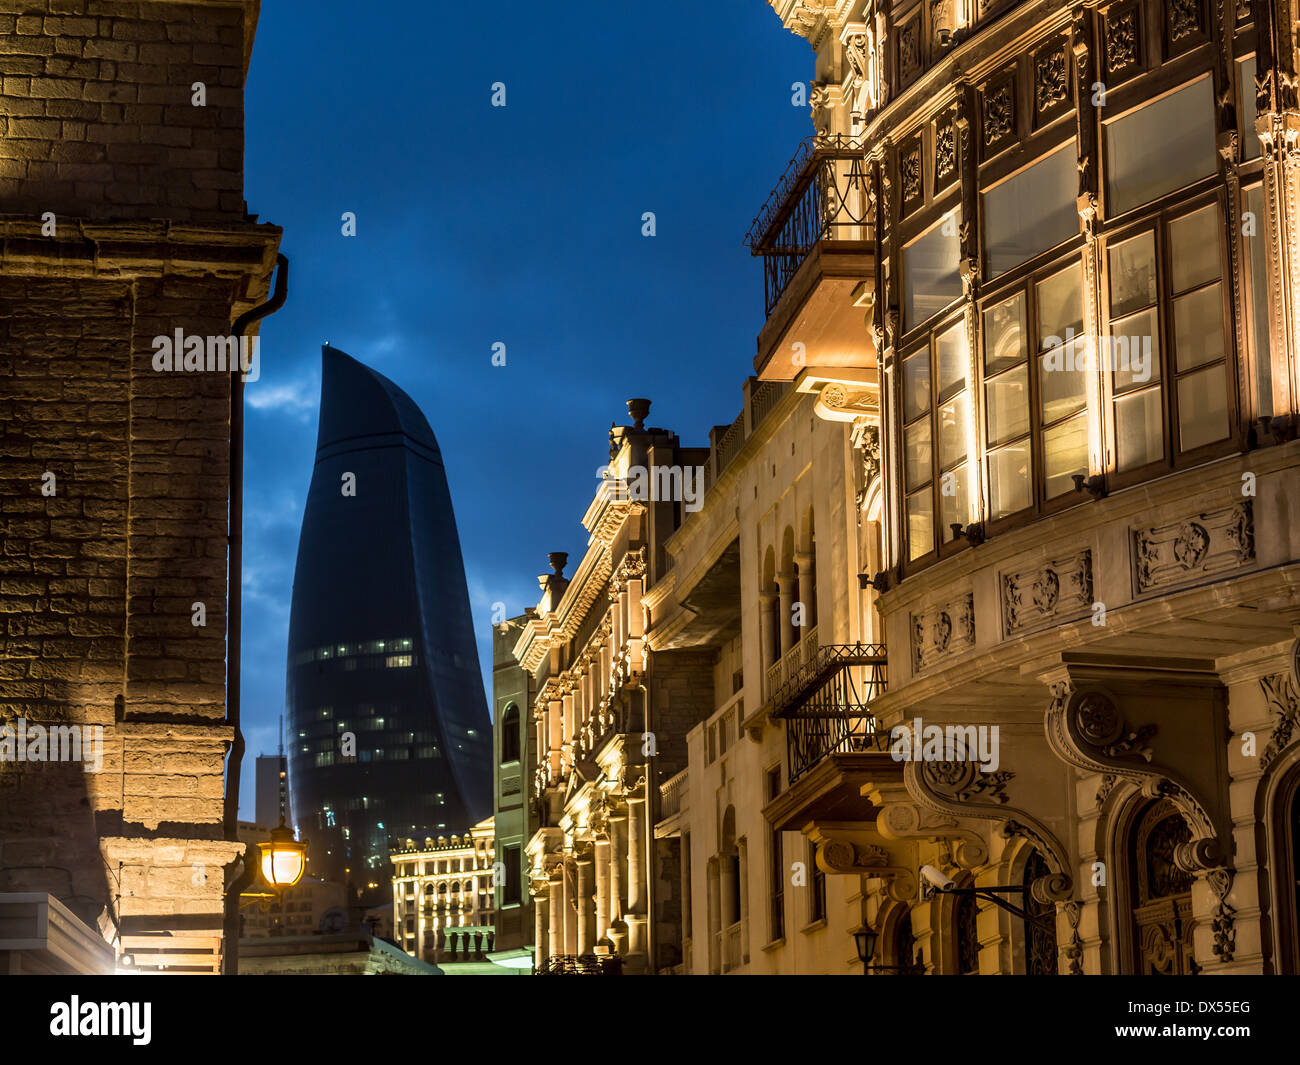 Icheri Sheher (Old Town) of Baku, Azerbaijan, by night. Icheri Sheher is a UNESCO World Heritage Site since 2000. - Stock Image